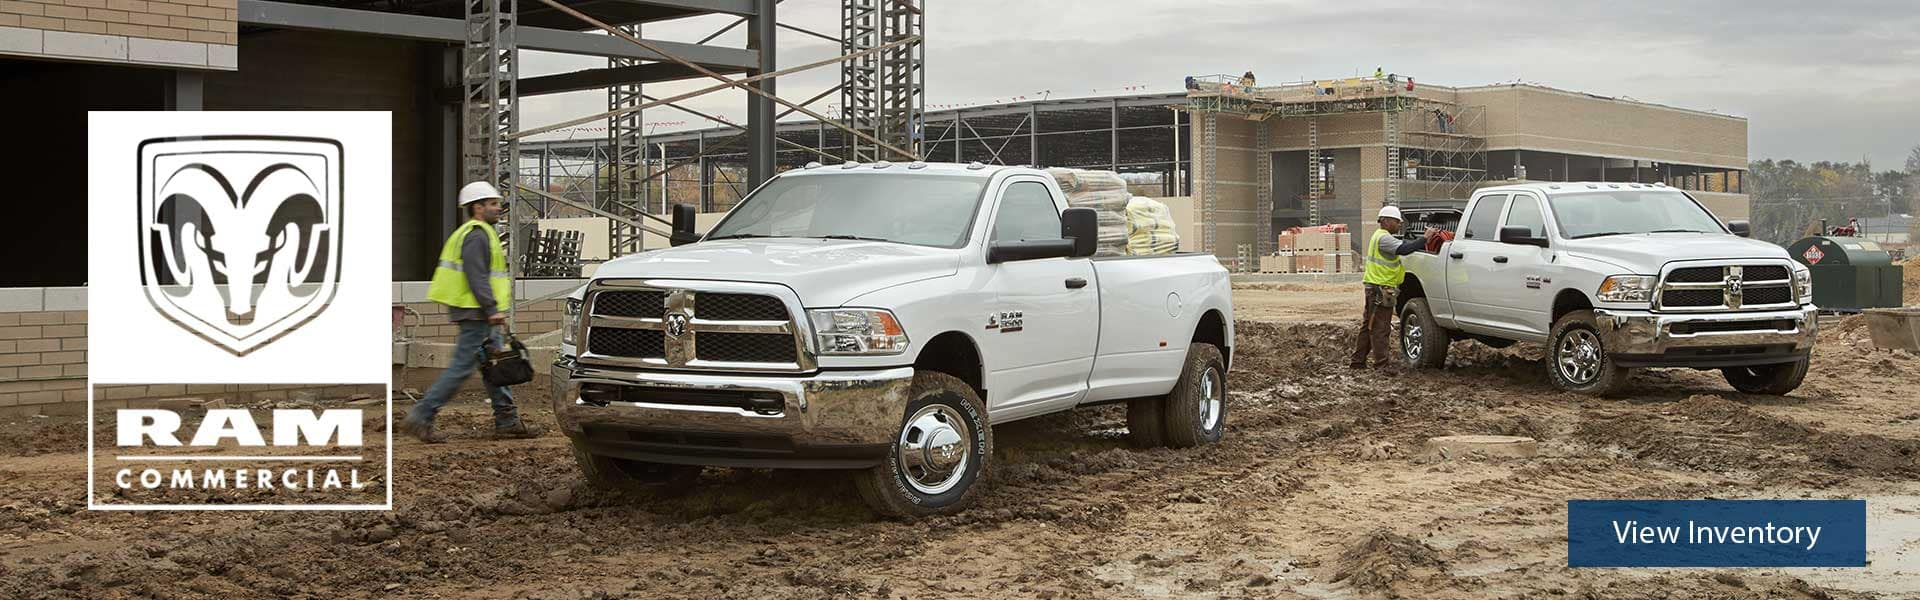 dodge ram power new pinterest others pin trucks wagon cars